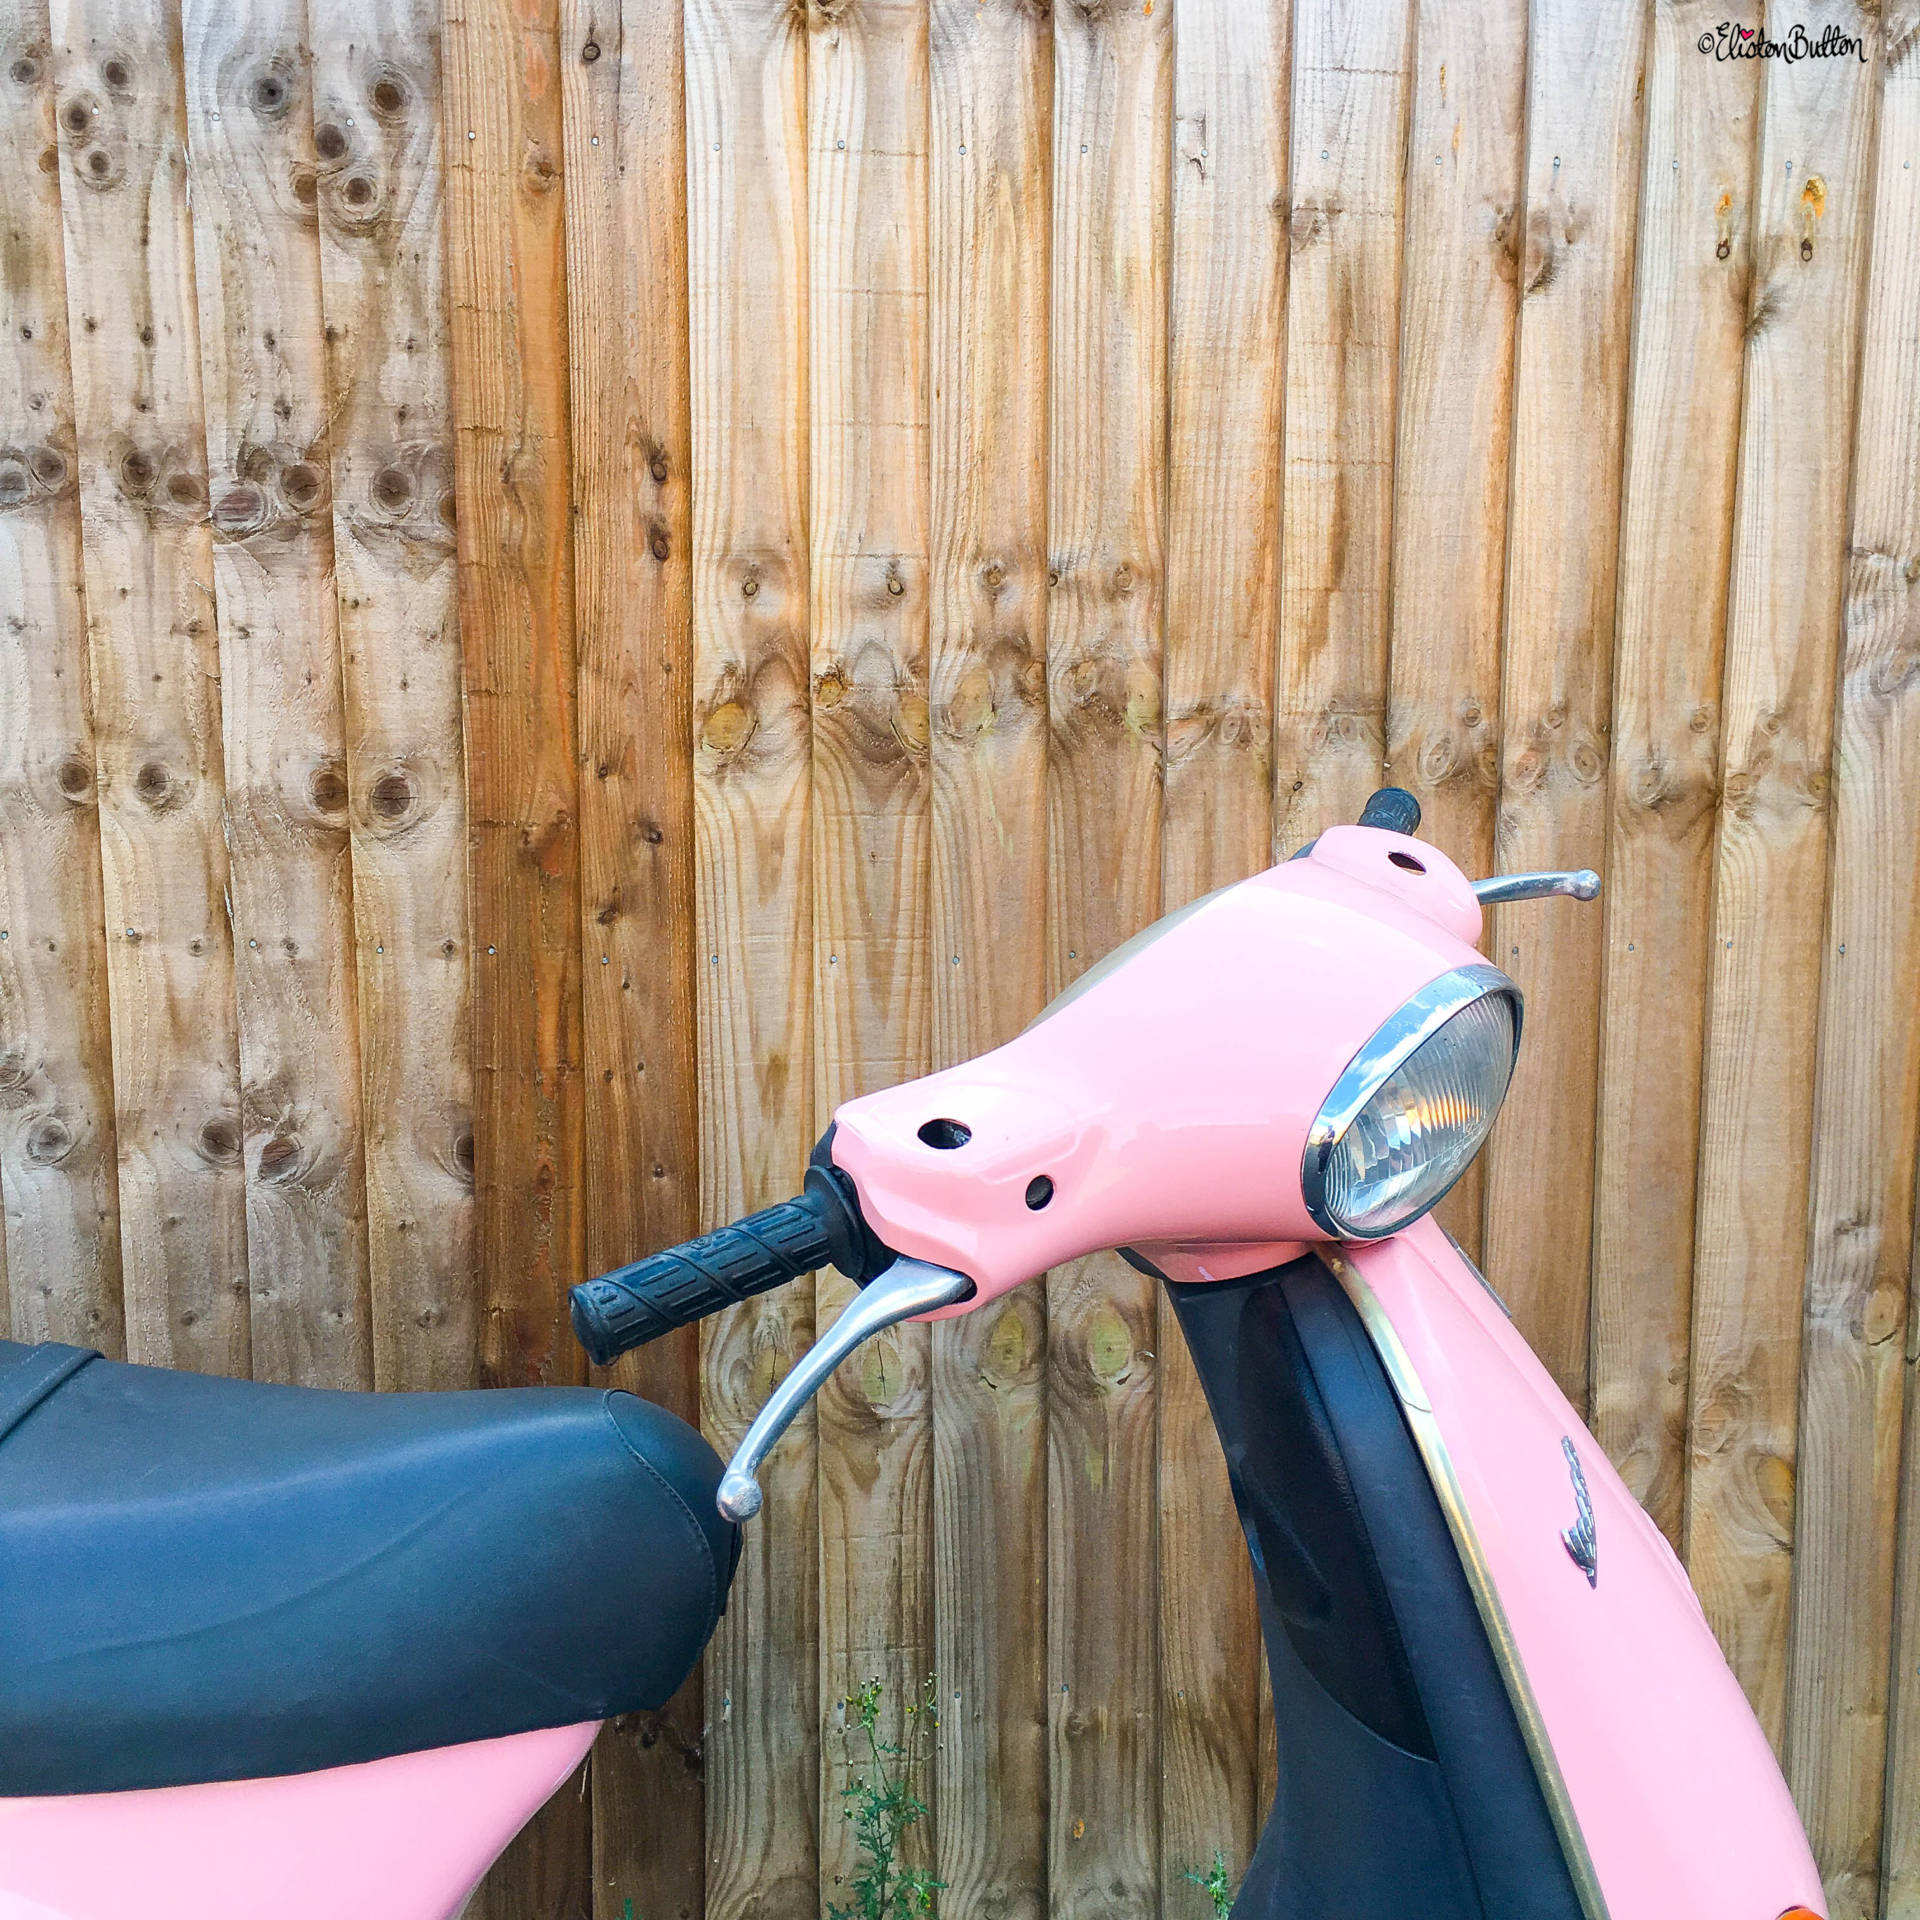 Pink Vespa ET2 - 10 Top Tips for...Moving House at www.elistonbutton.com - Eliston Button - That Crafty Kid – Art, Design, Craft & Adventure.